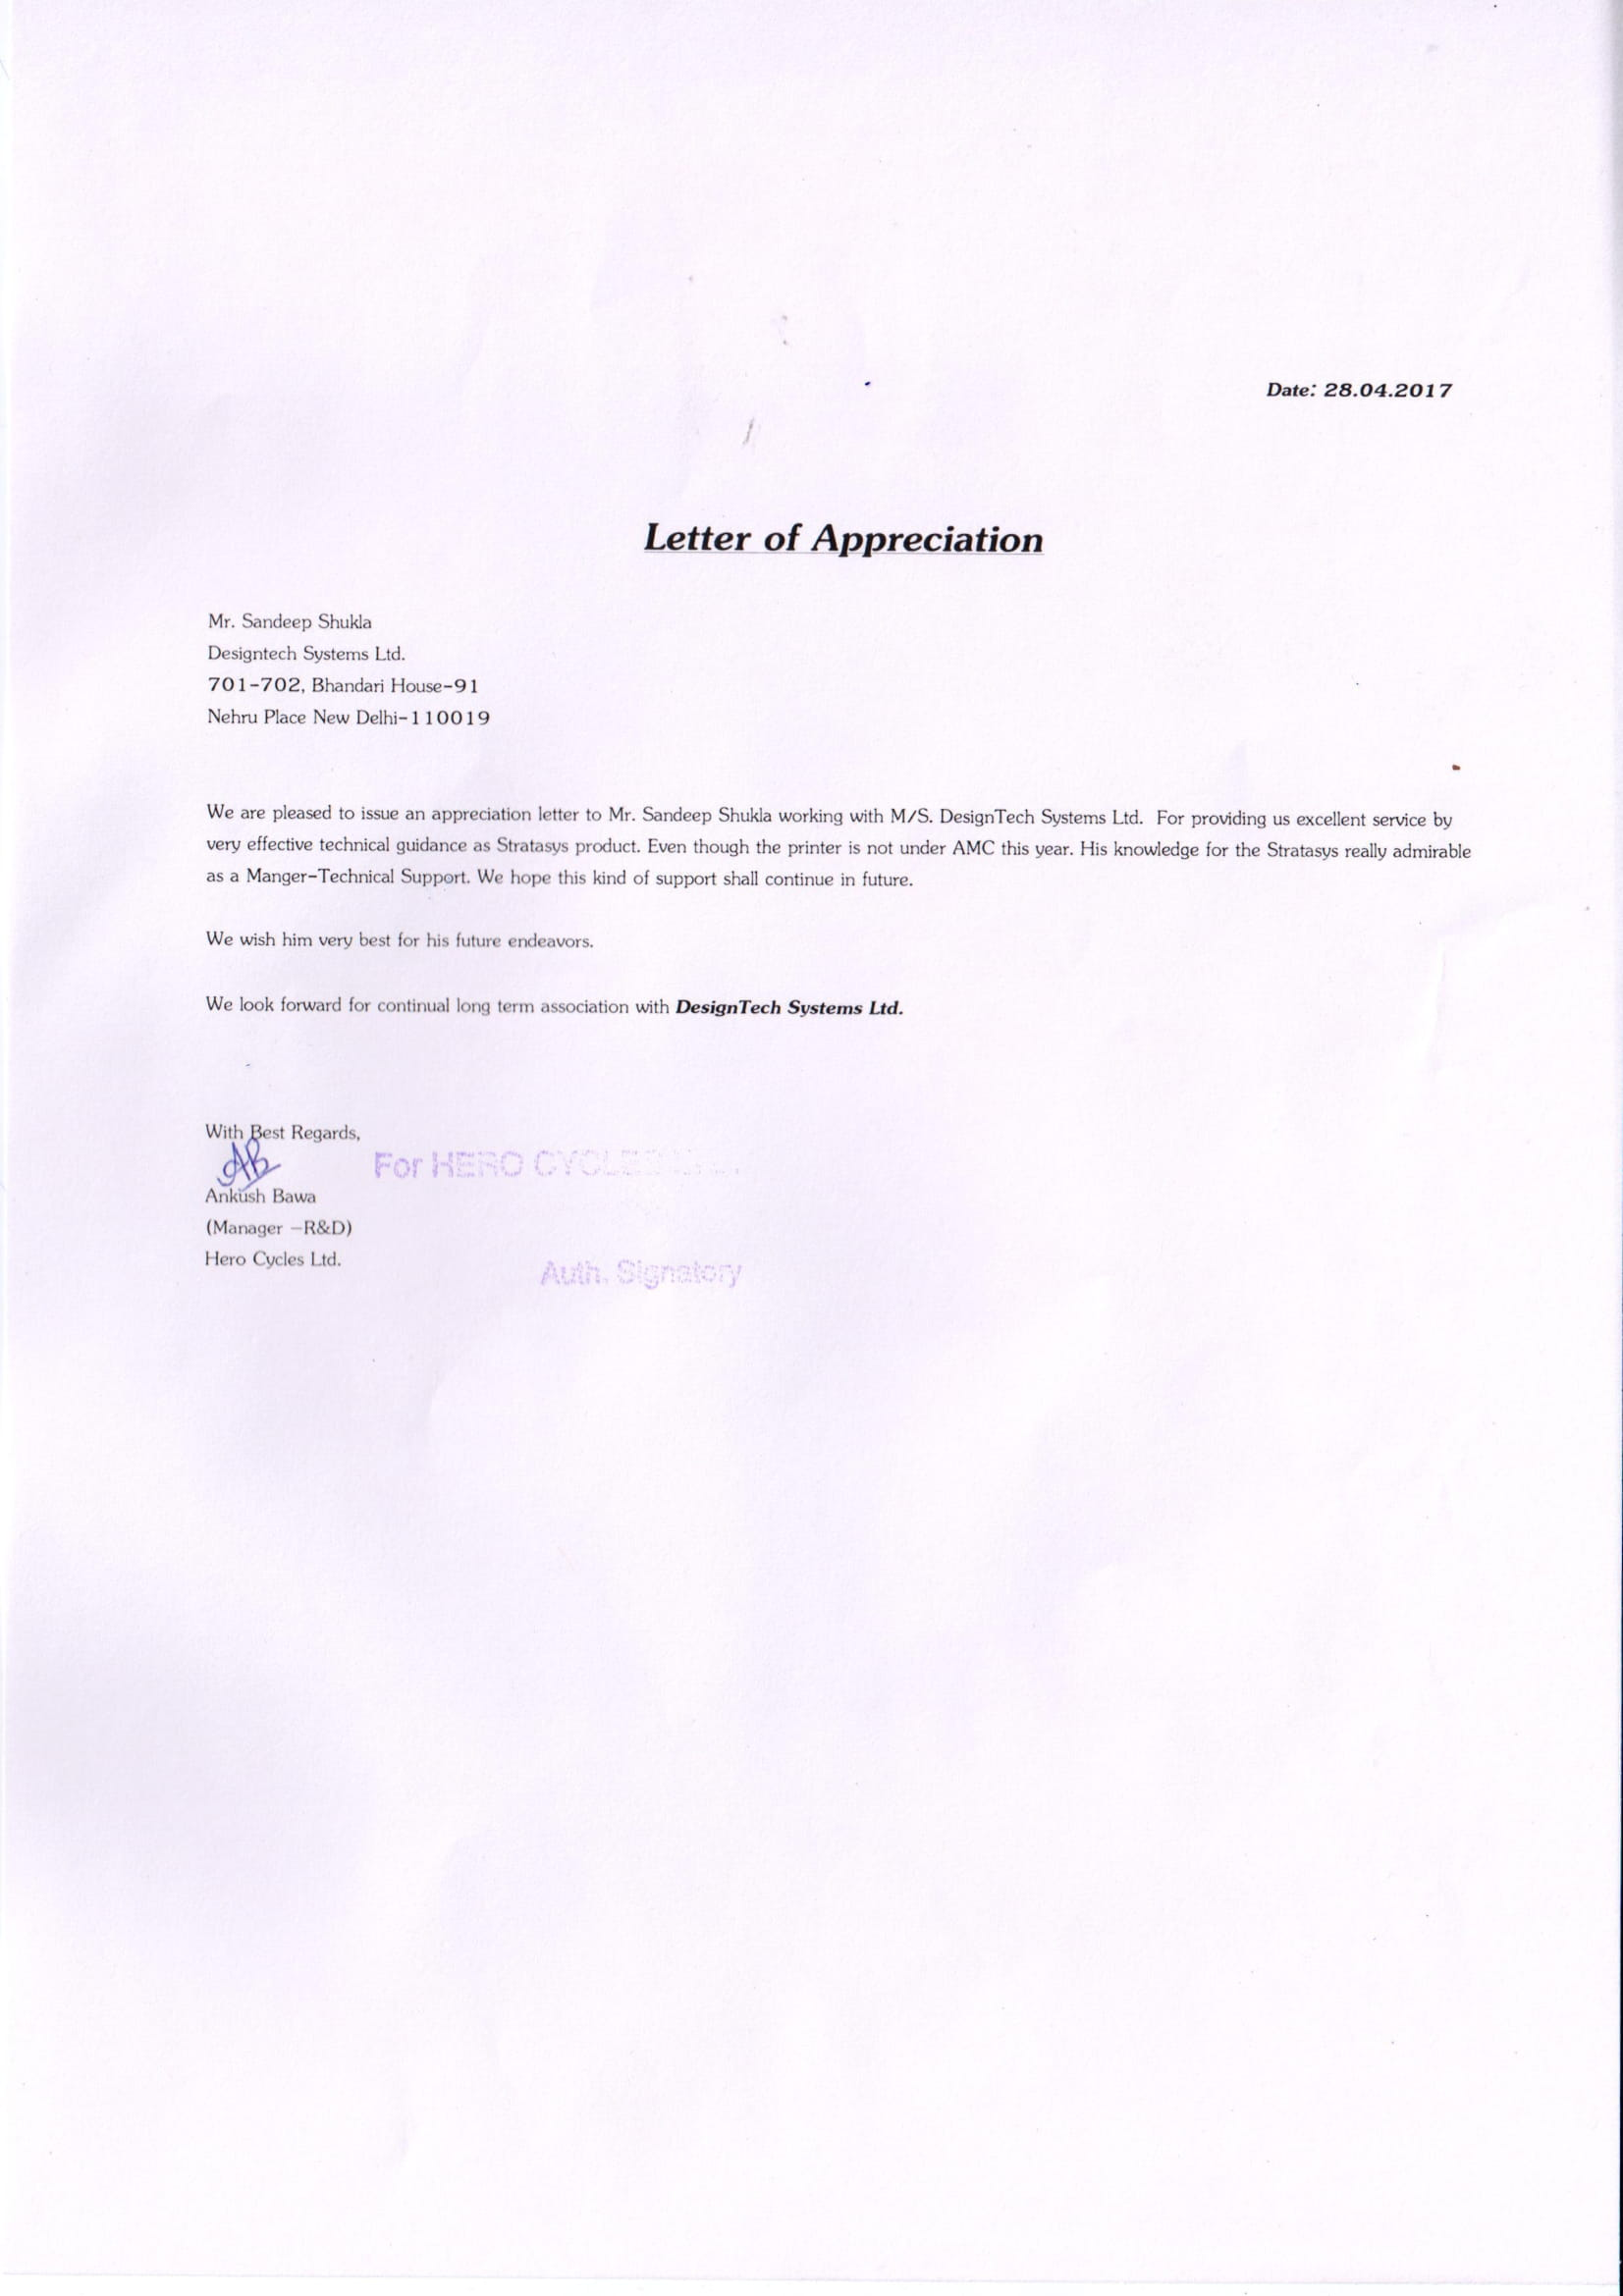 letters in pdf format for services    training provided by